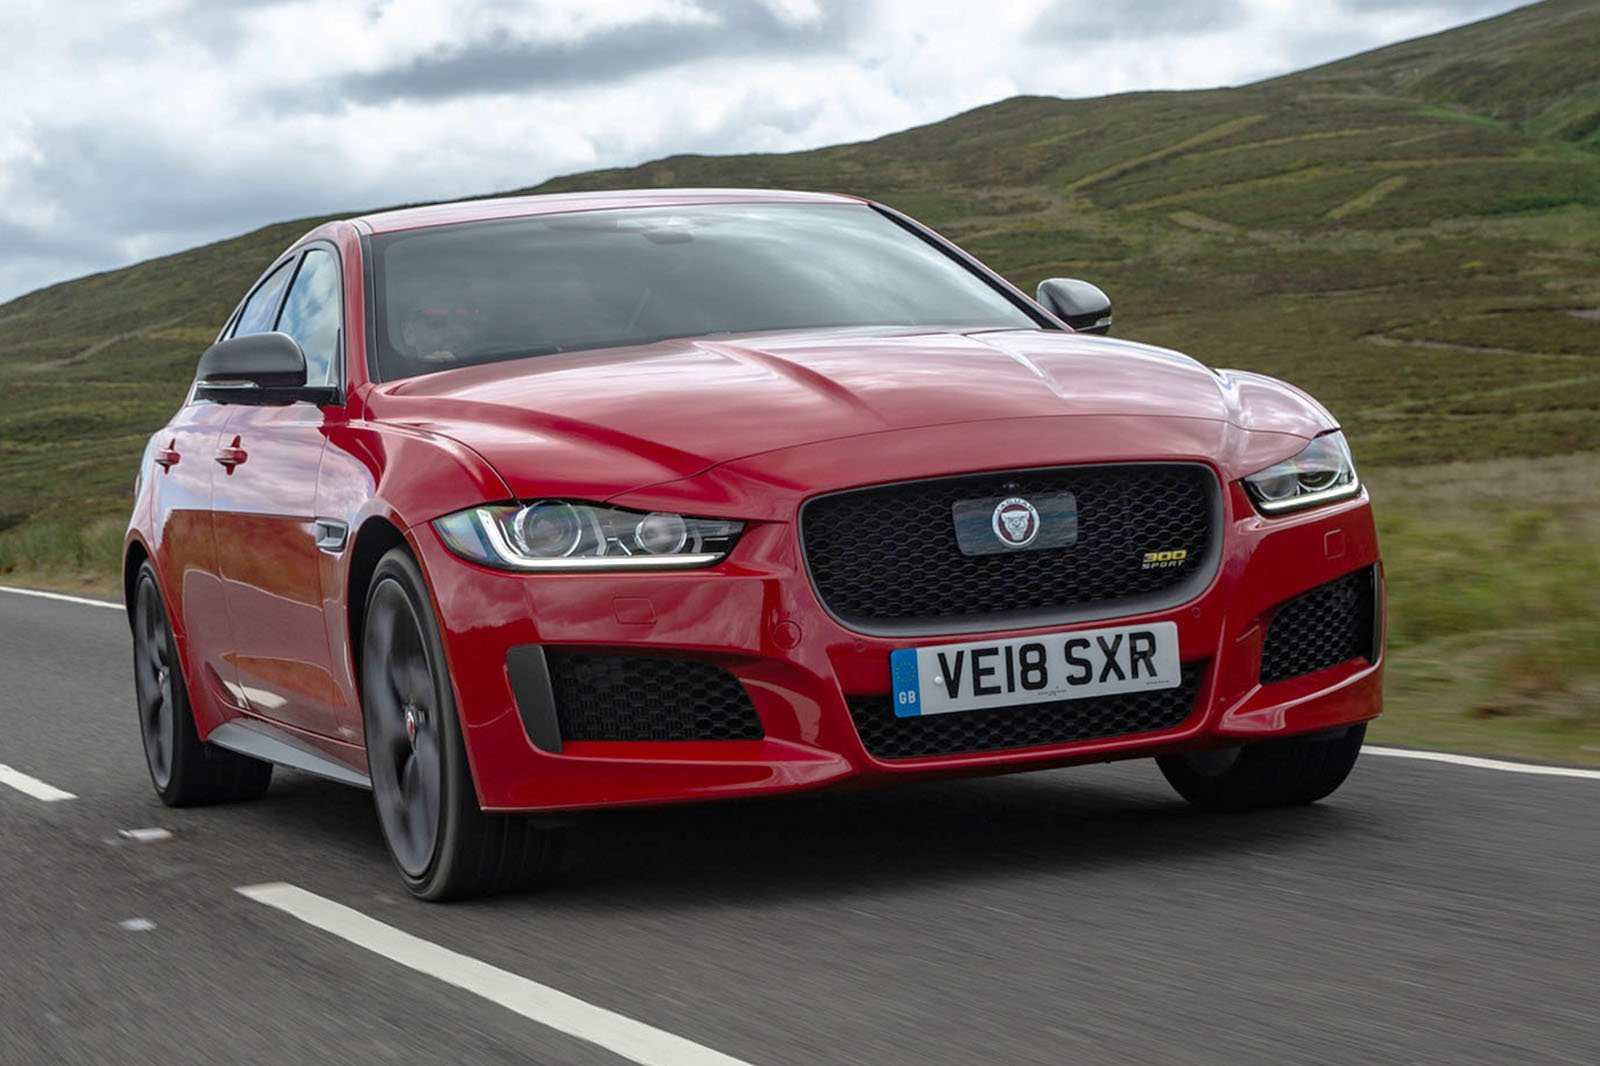 2018 Jaguar Xe 300 Sport Review Gallery Price Specs And Release